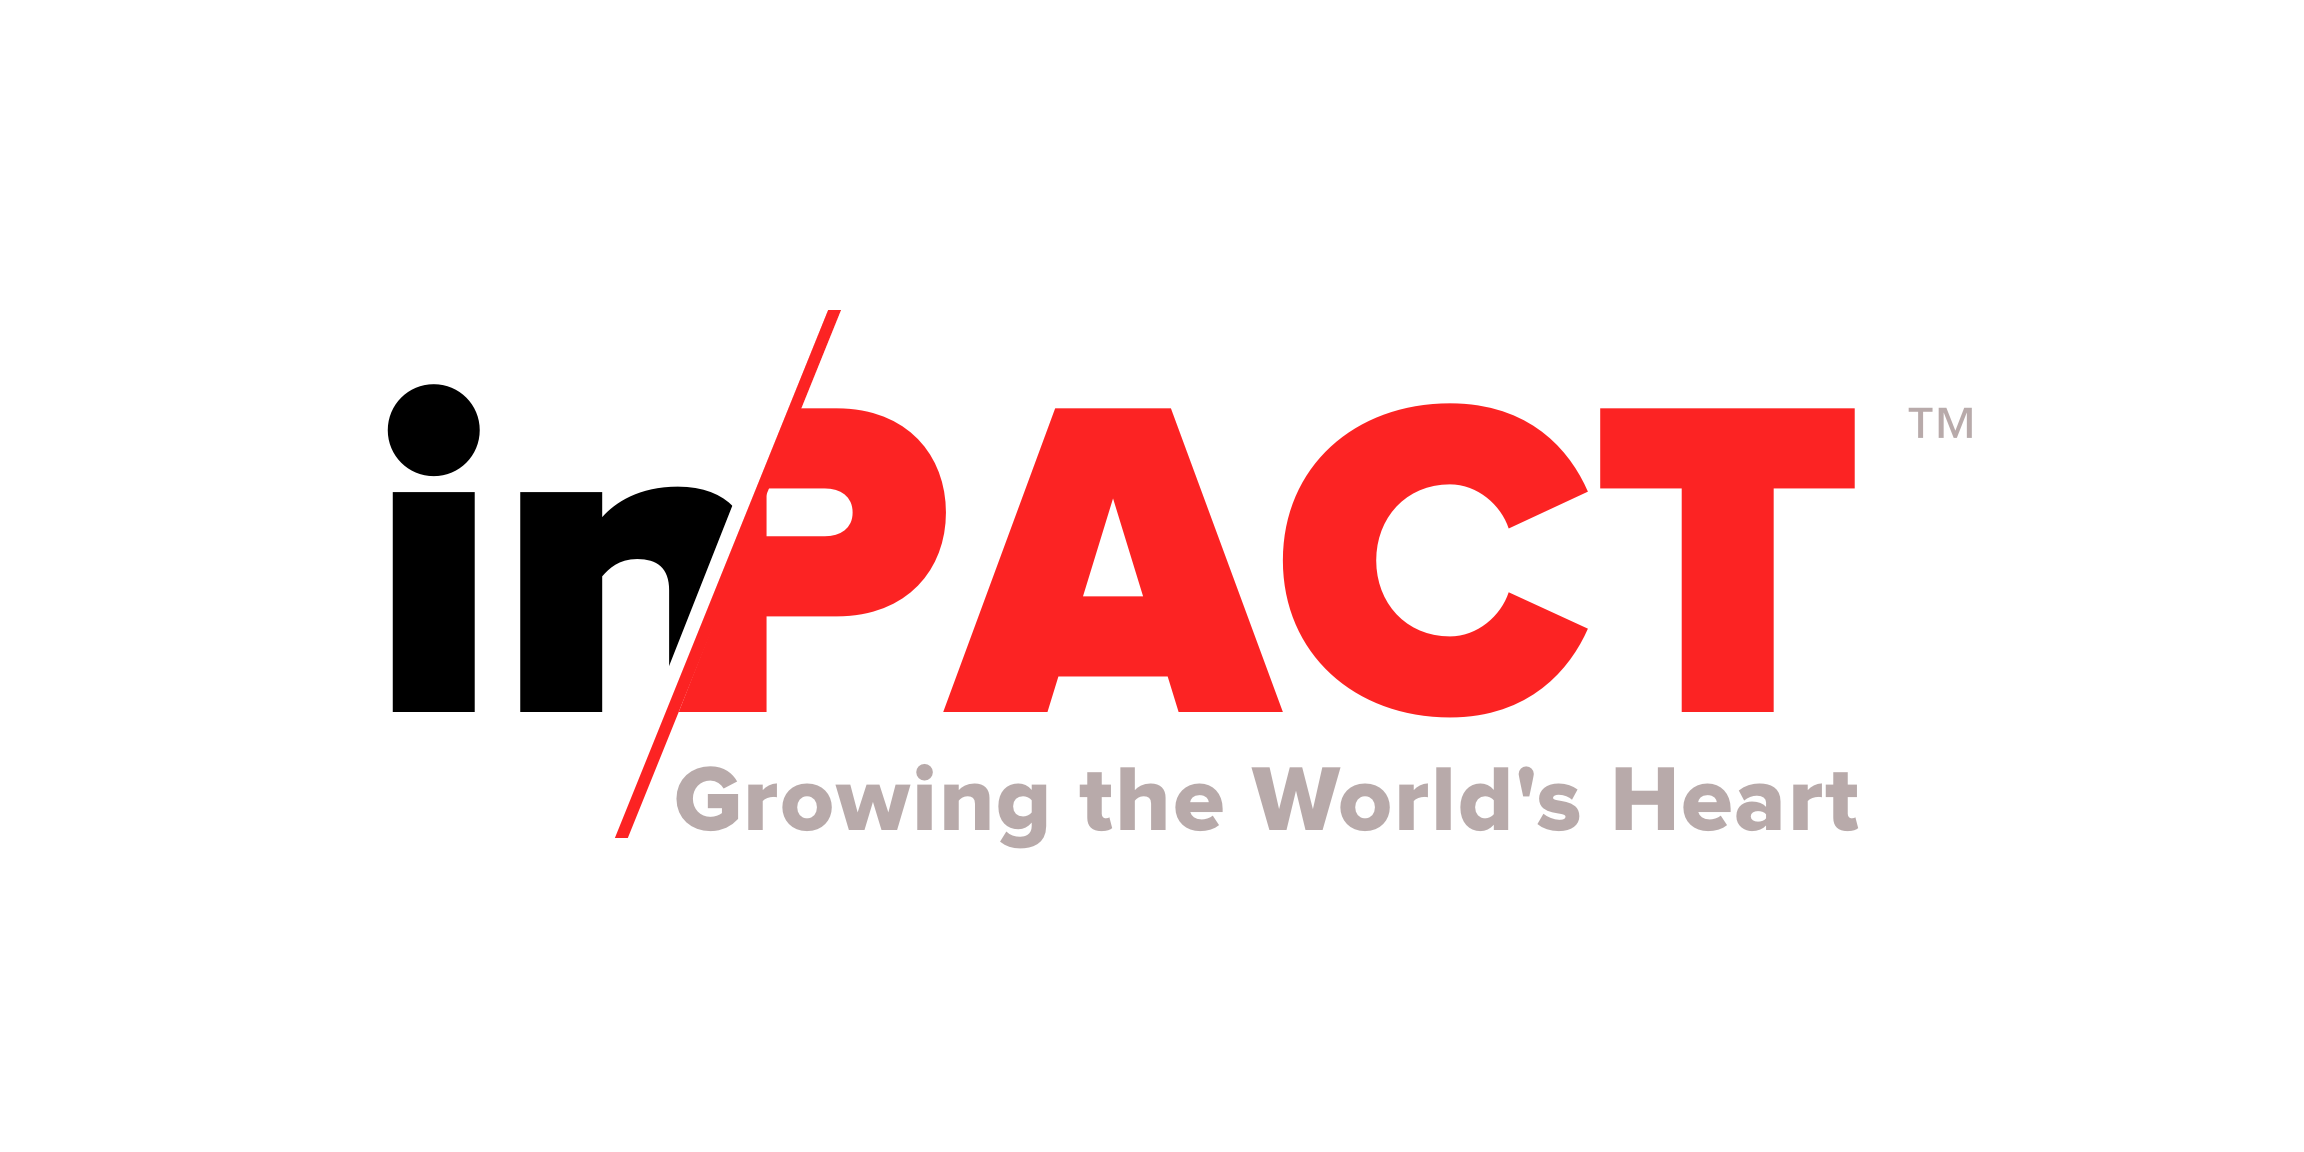 1596462414 compact inpact logo with alt tagline